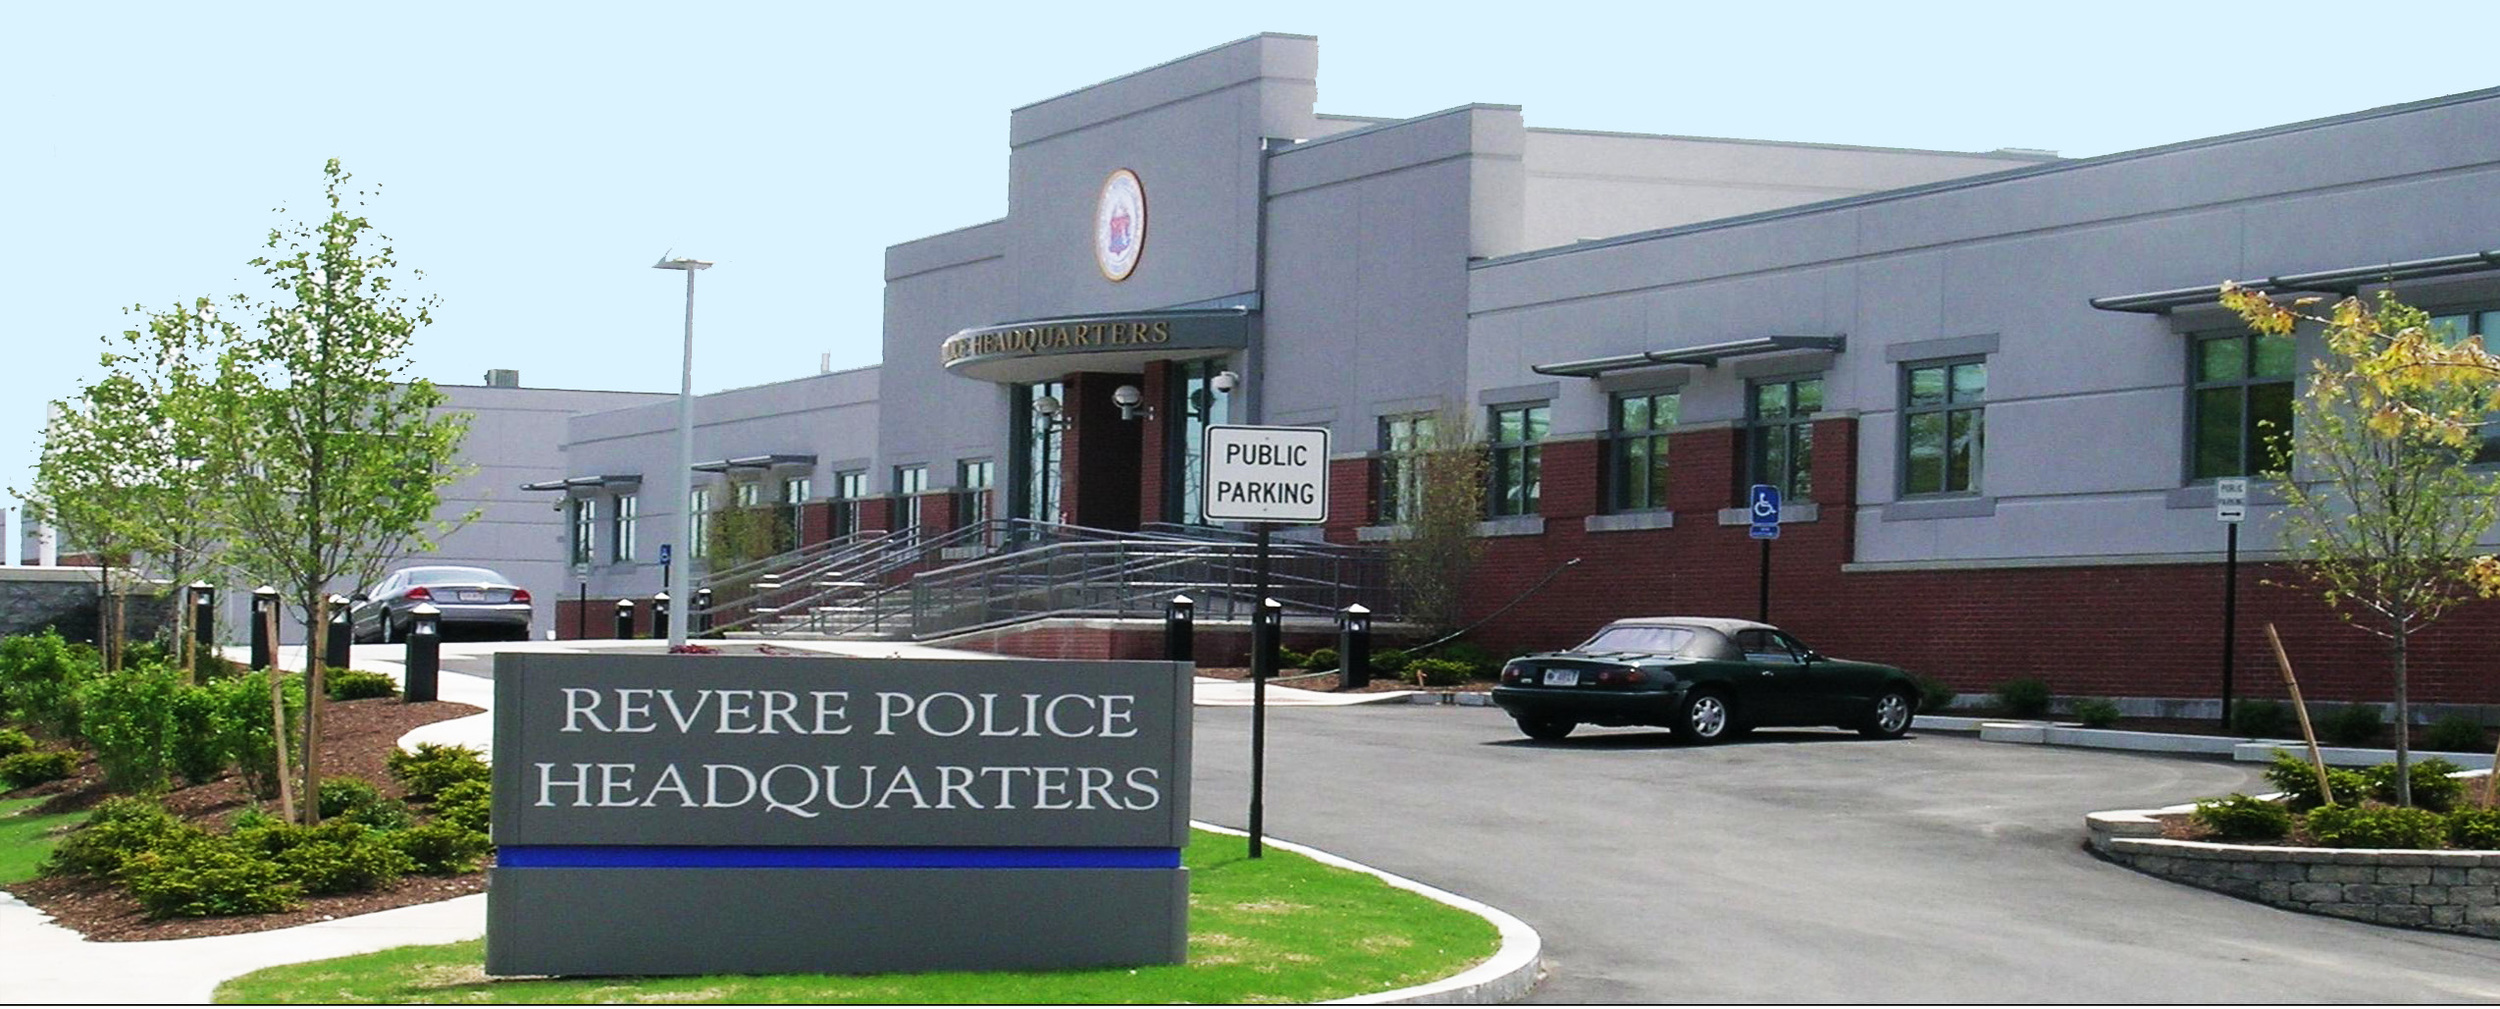 Revere Police Headquarters